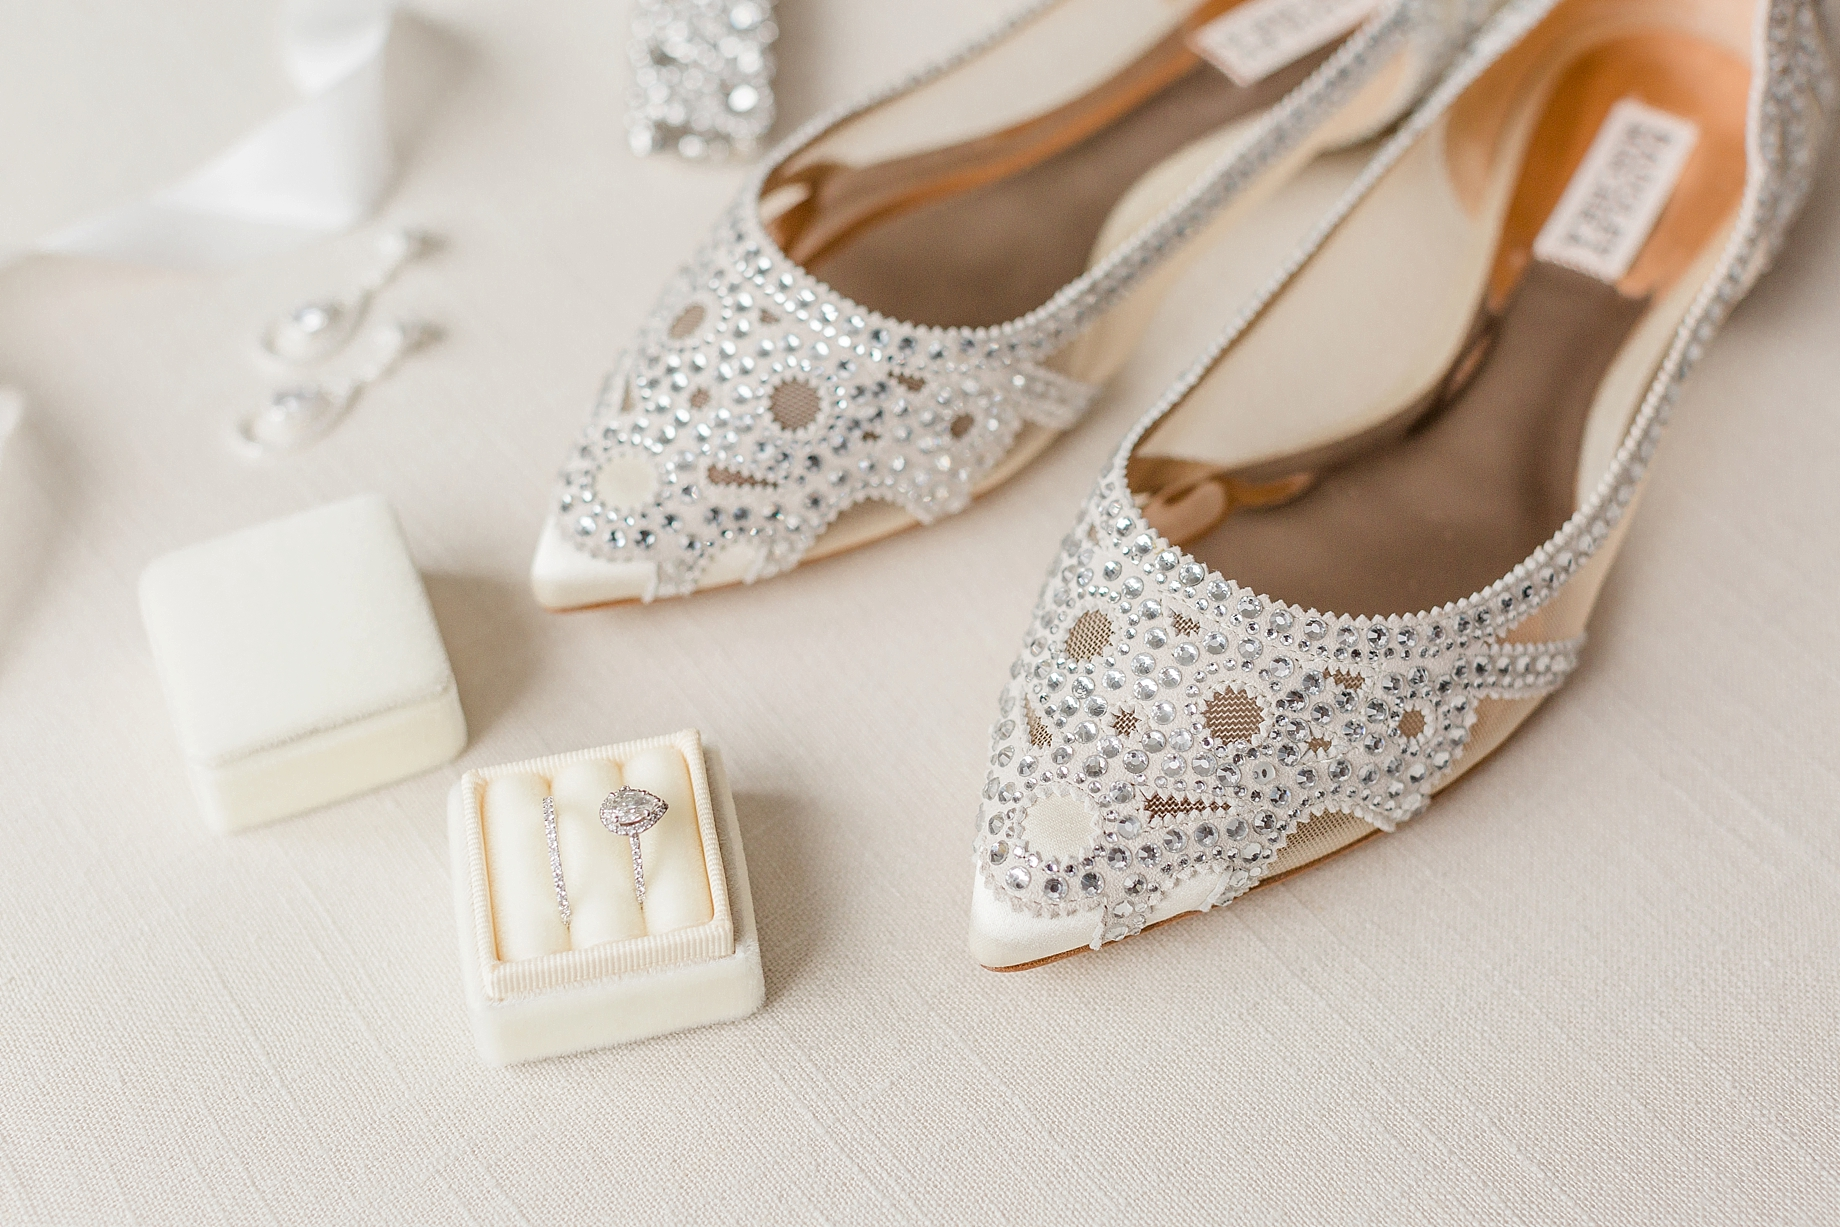 champagne bridal details | Badgley Mischka Flats | William Penn Inn Wedding